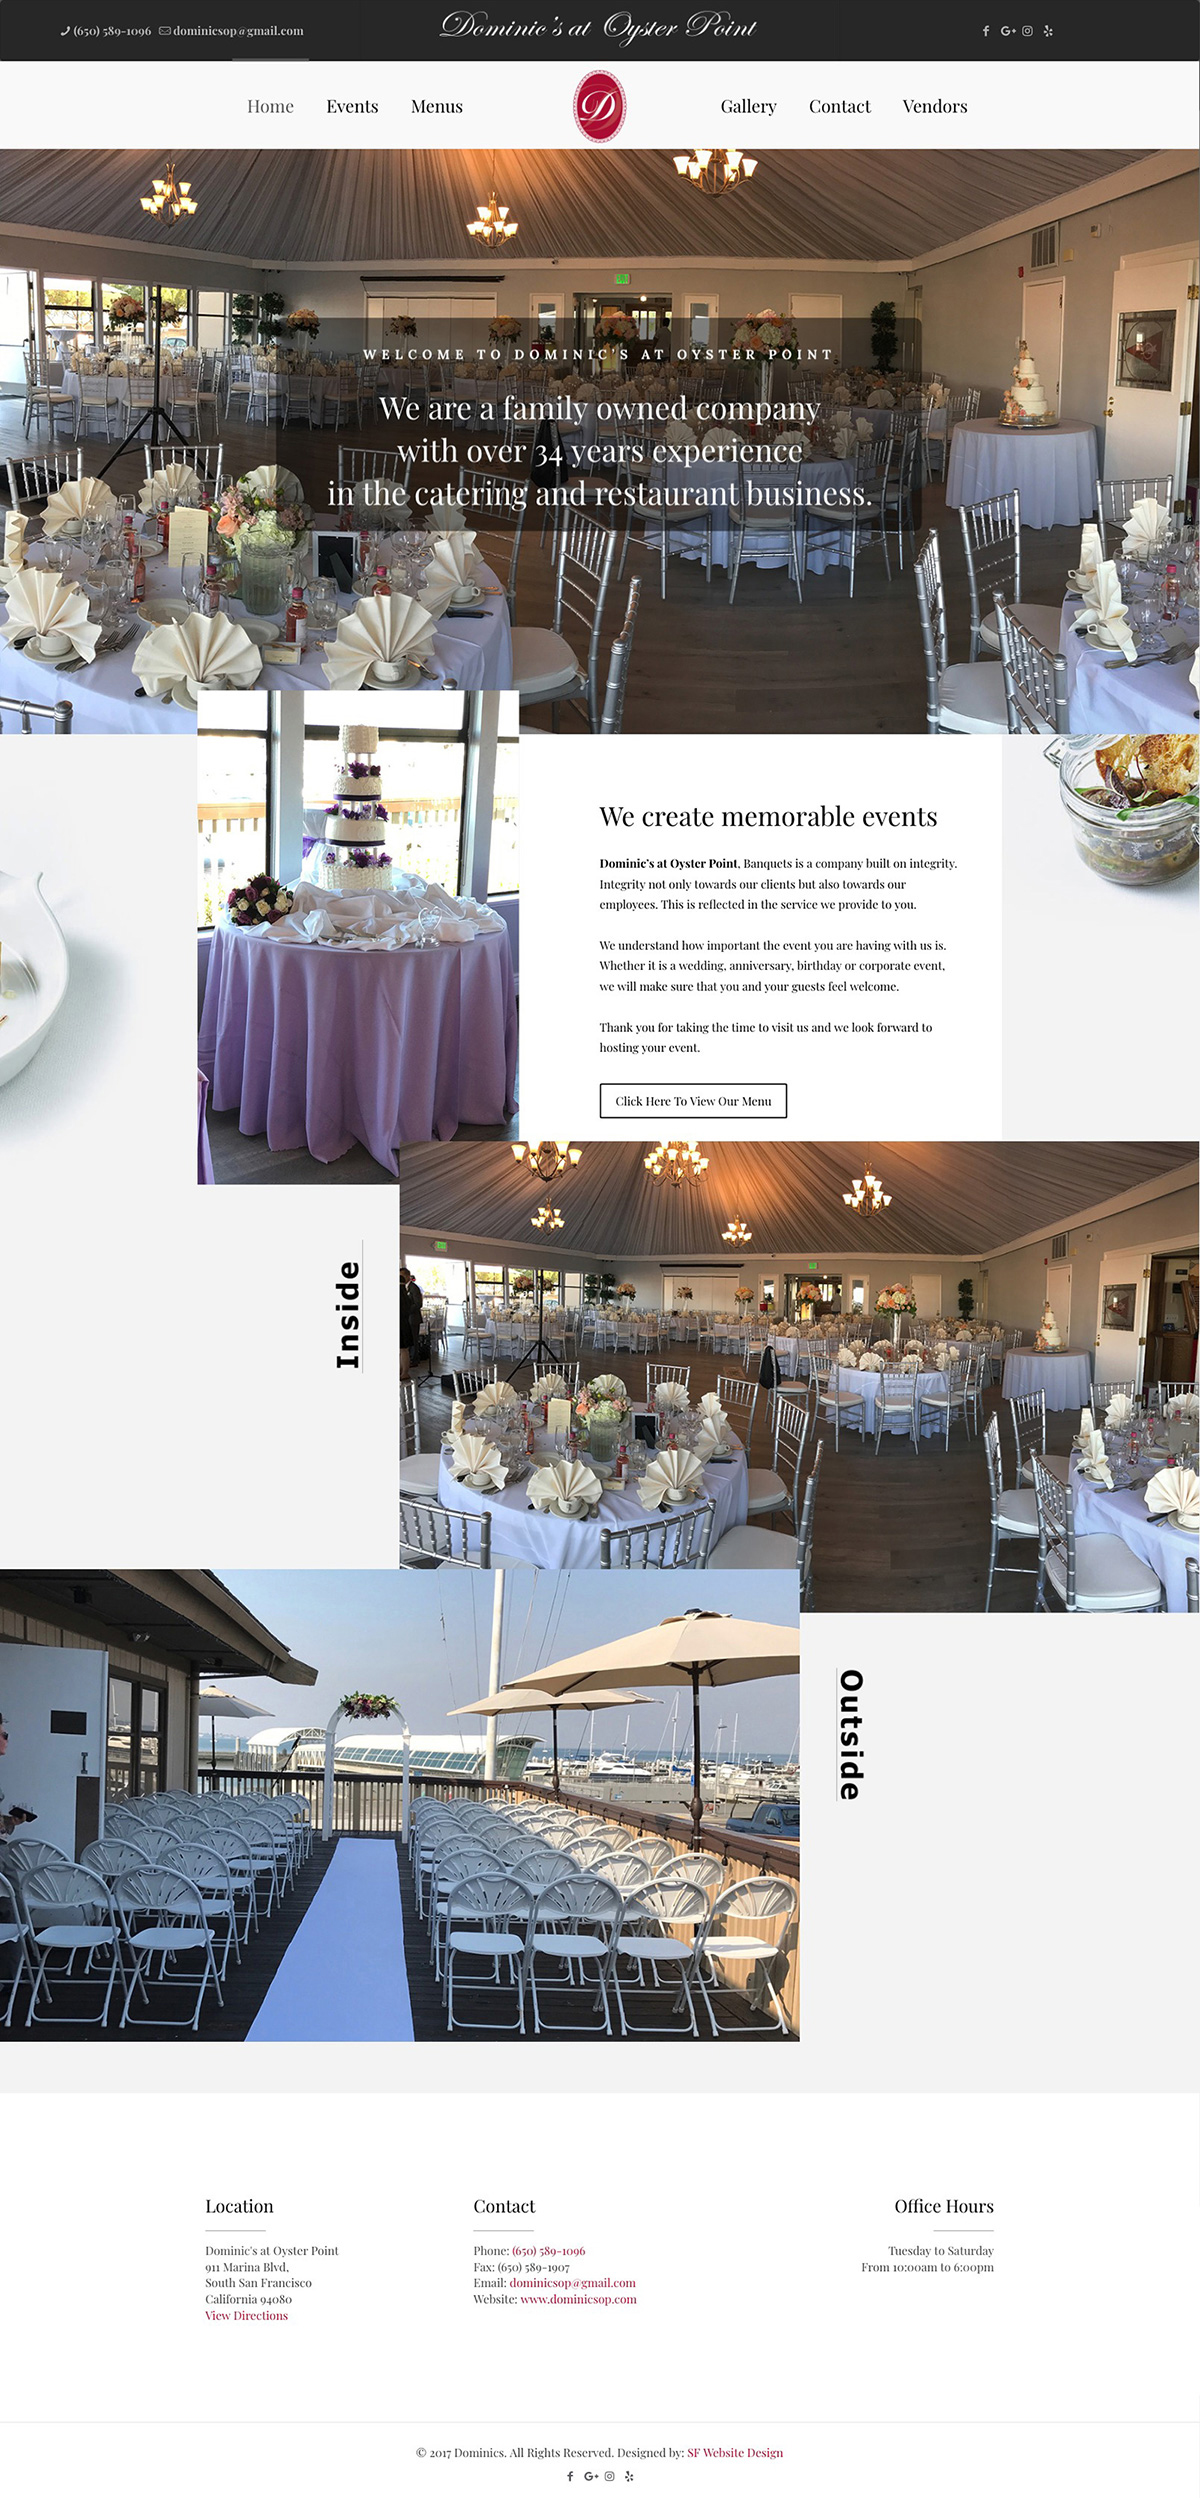 Dominics at Oyster Point South San Francisco website redesign